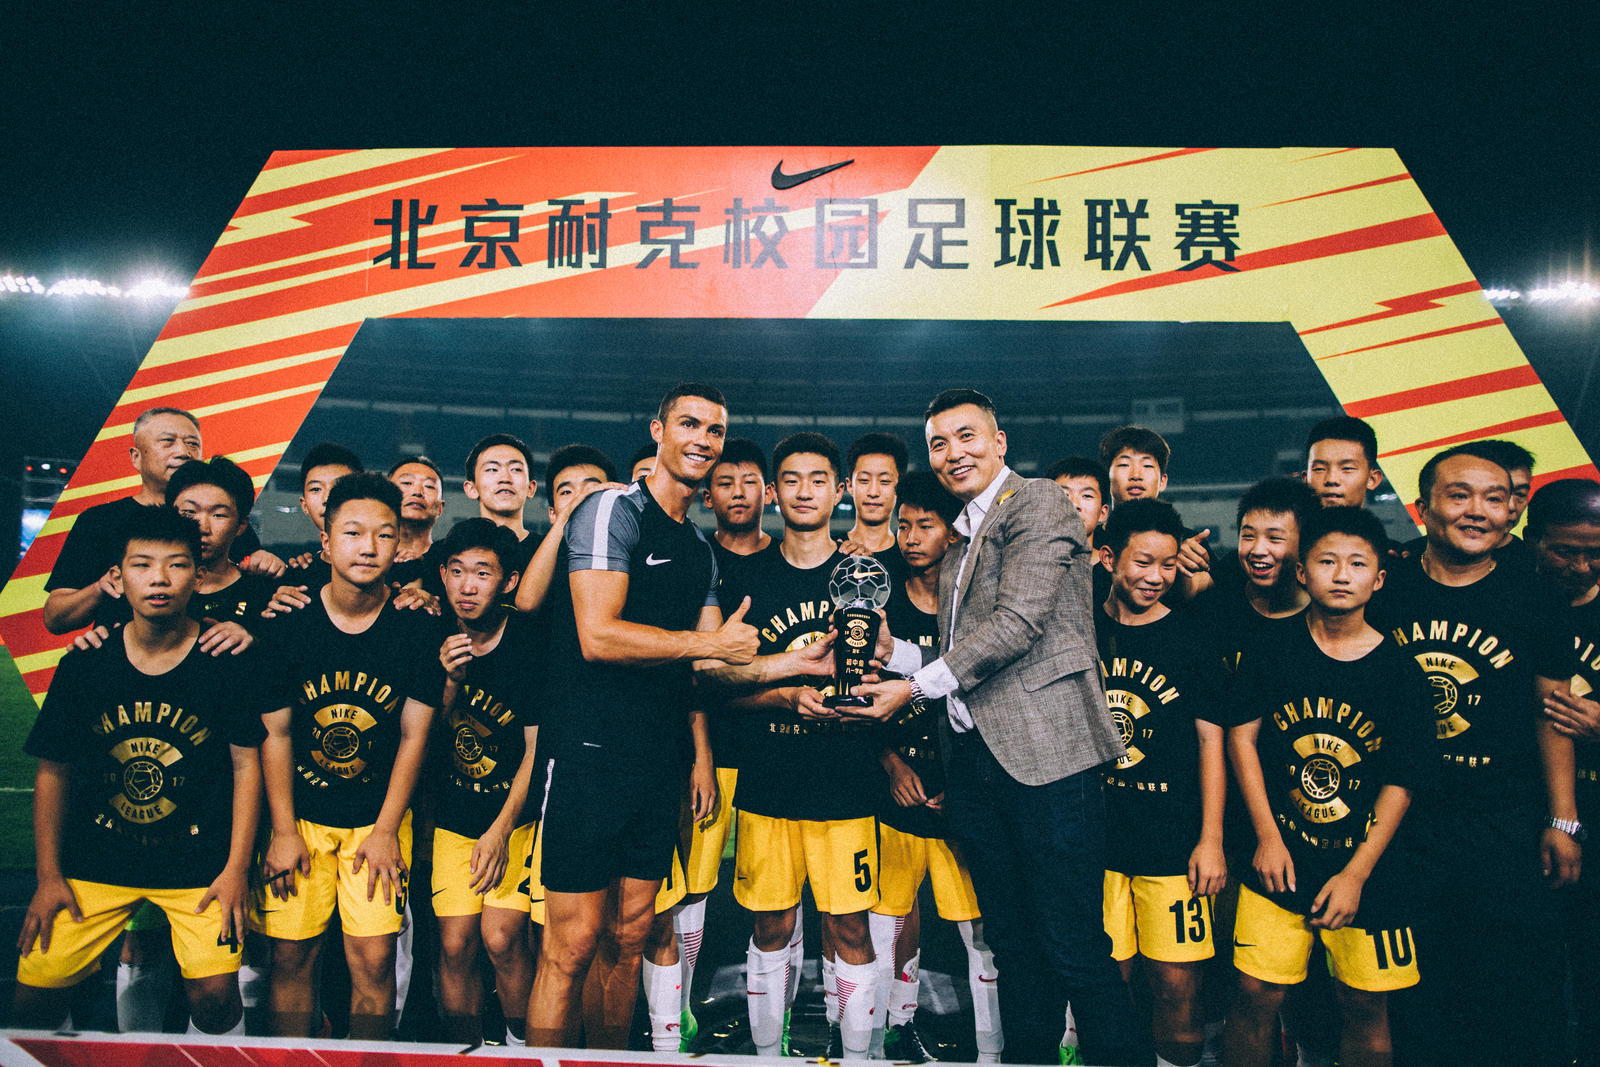 Inside China's Football Culture with Cristiano Ronaldo 3